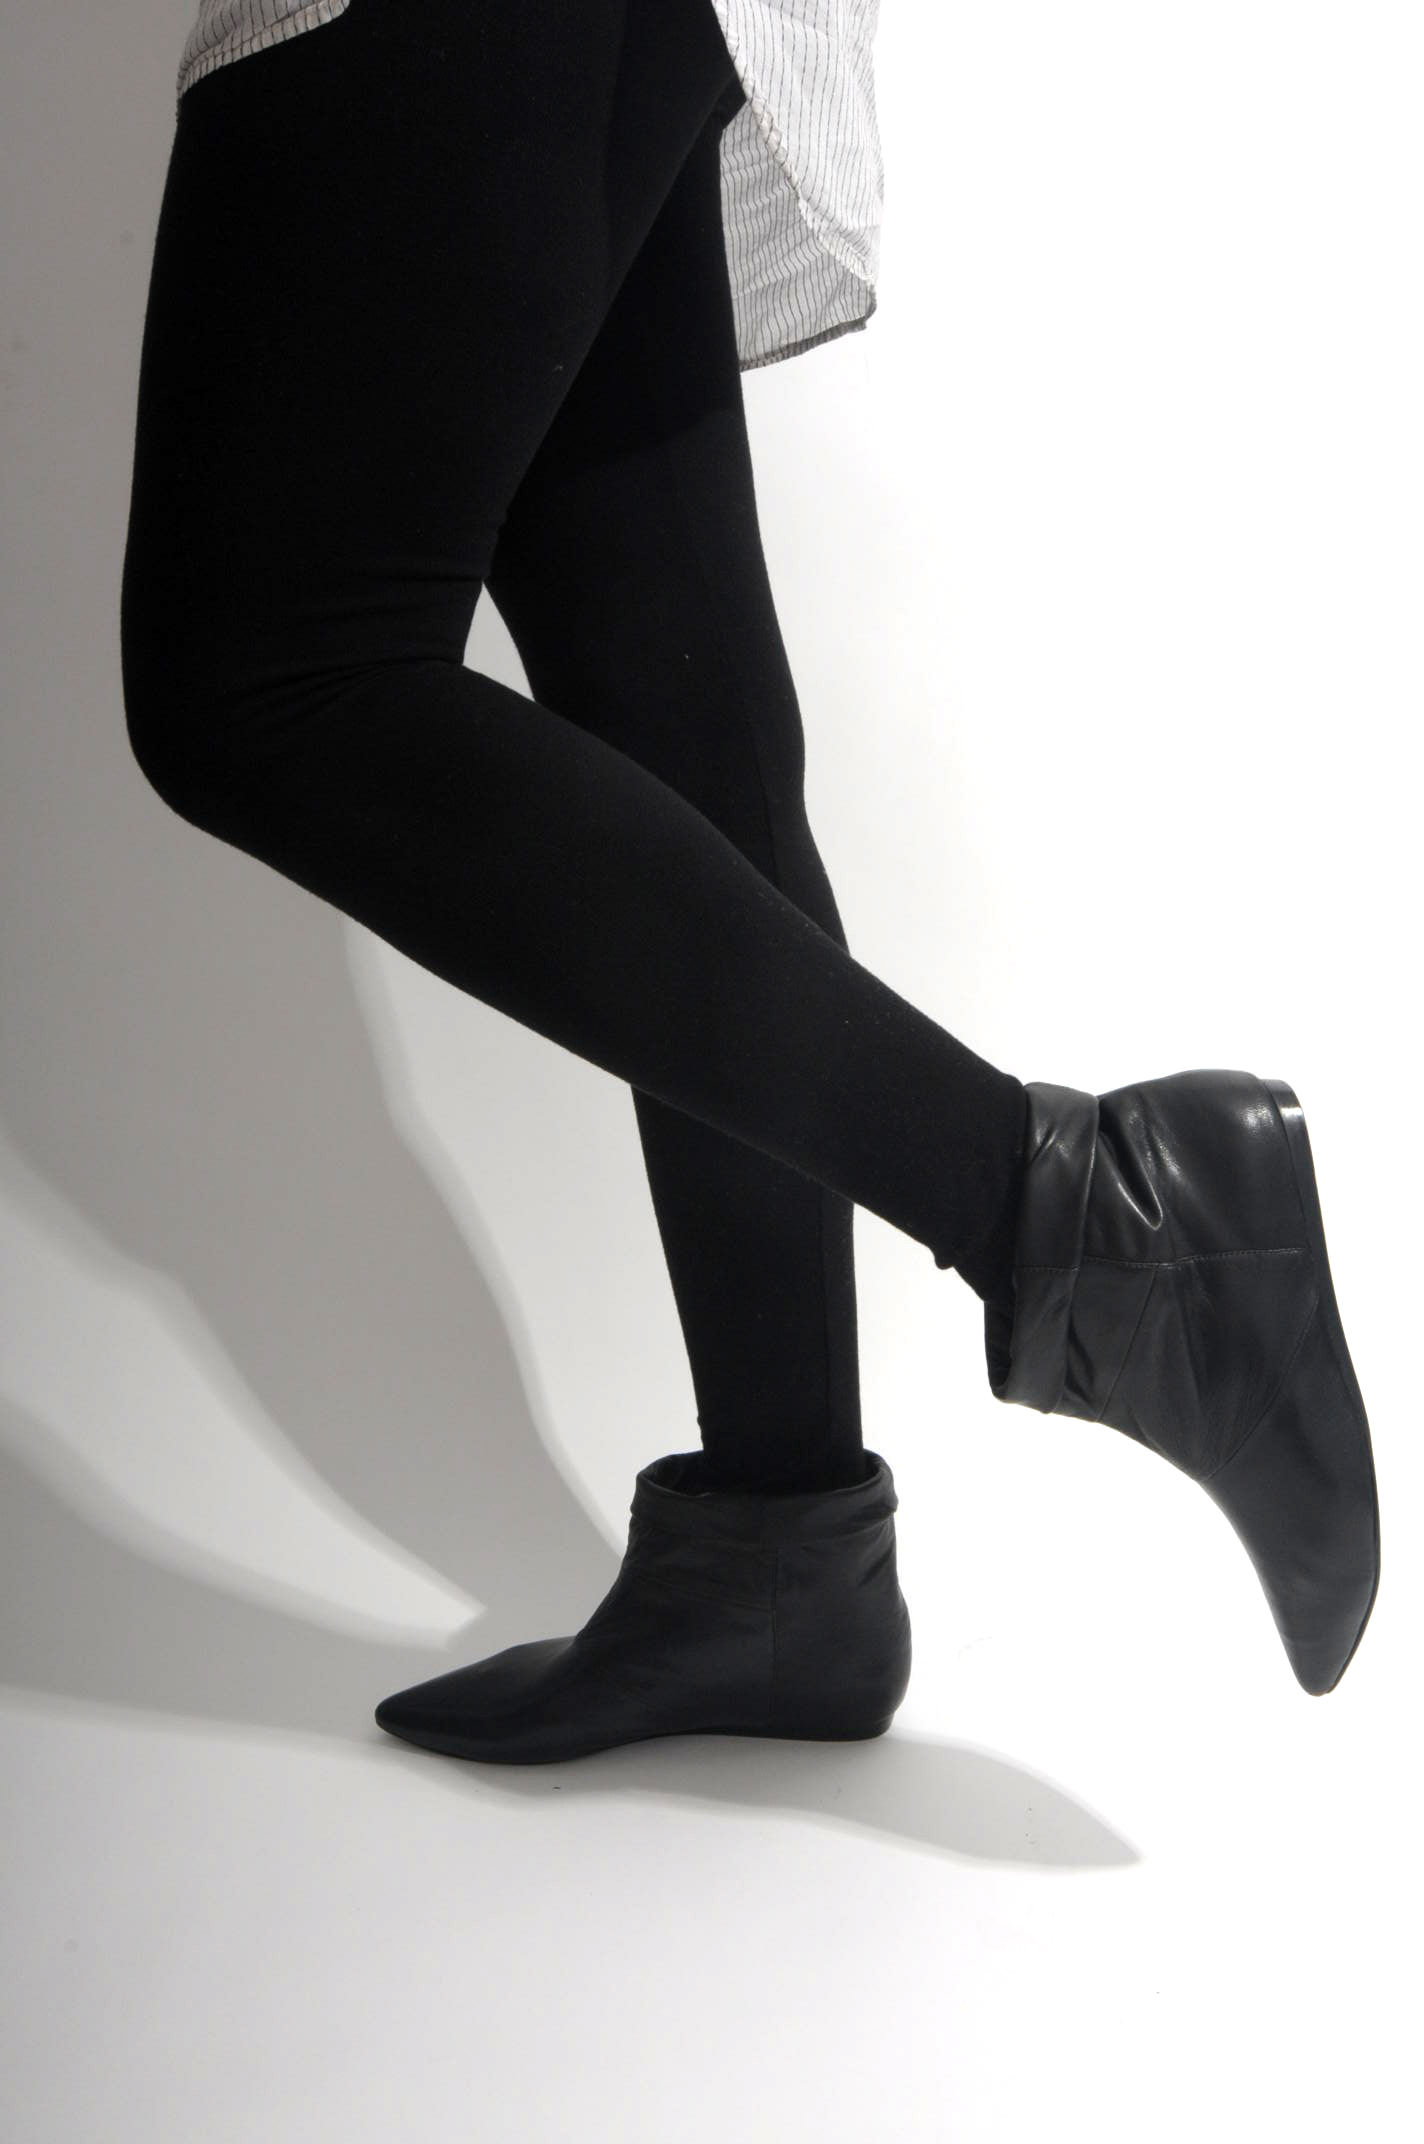 womens ankle boots | KATHRYN AMBERLEIGH